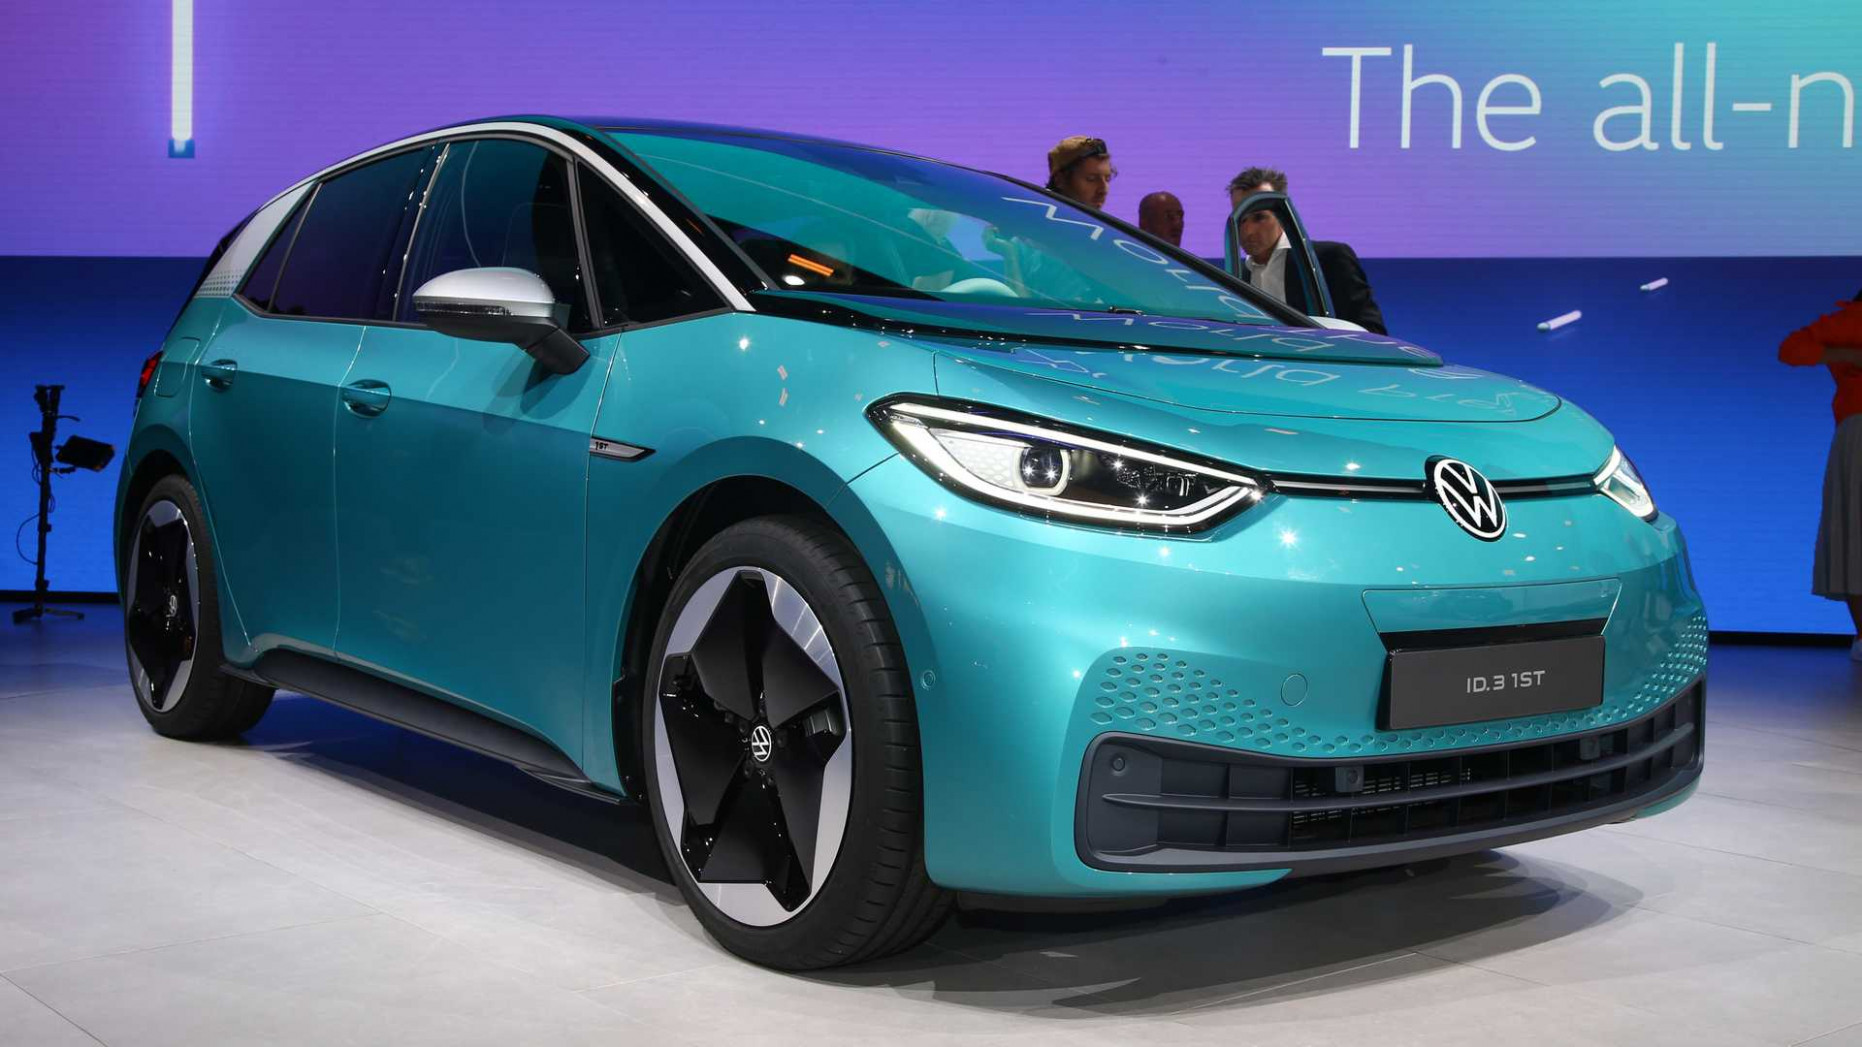 9 VW ID.9 Electric City Car Planned With 985-Mile Range: Report